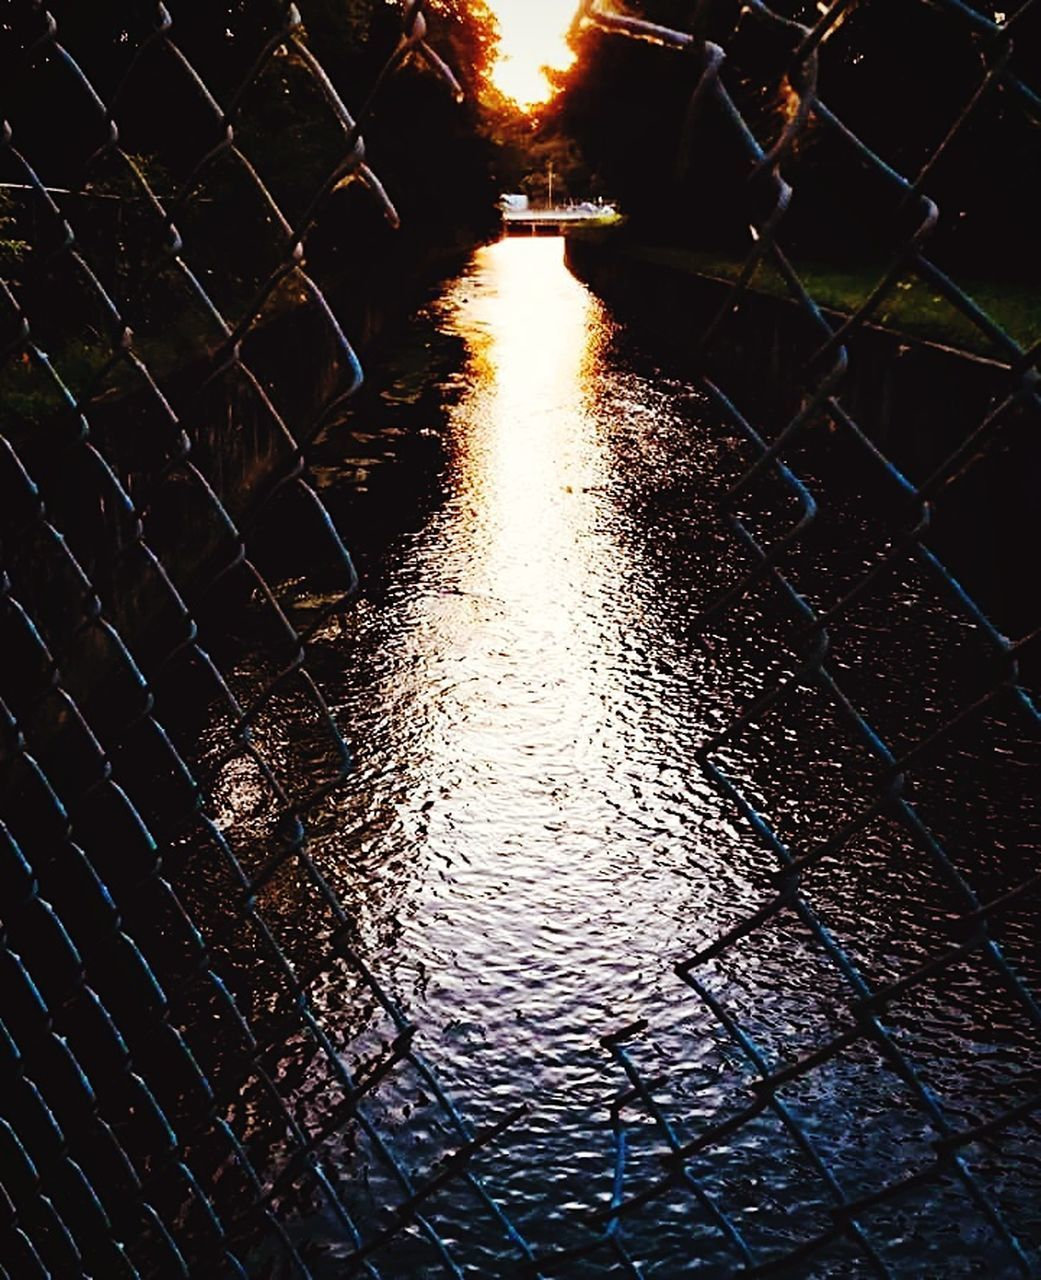 illuminated, night, no people, architecture, the way forward, nature, direction, city, street, pattern, fence, footpath, wet, water, chainlink fence, diminishing perspective, outdoors, cobblestone, built structure, rain, light